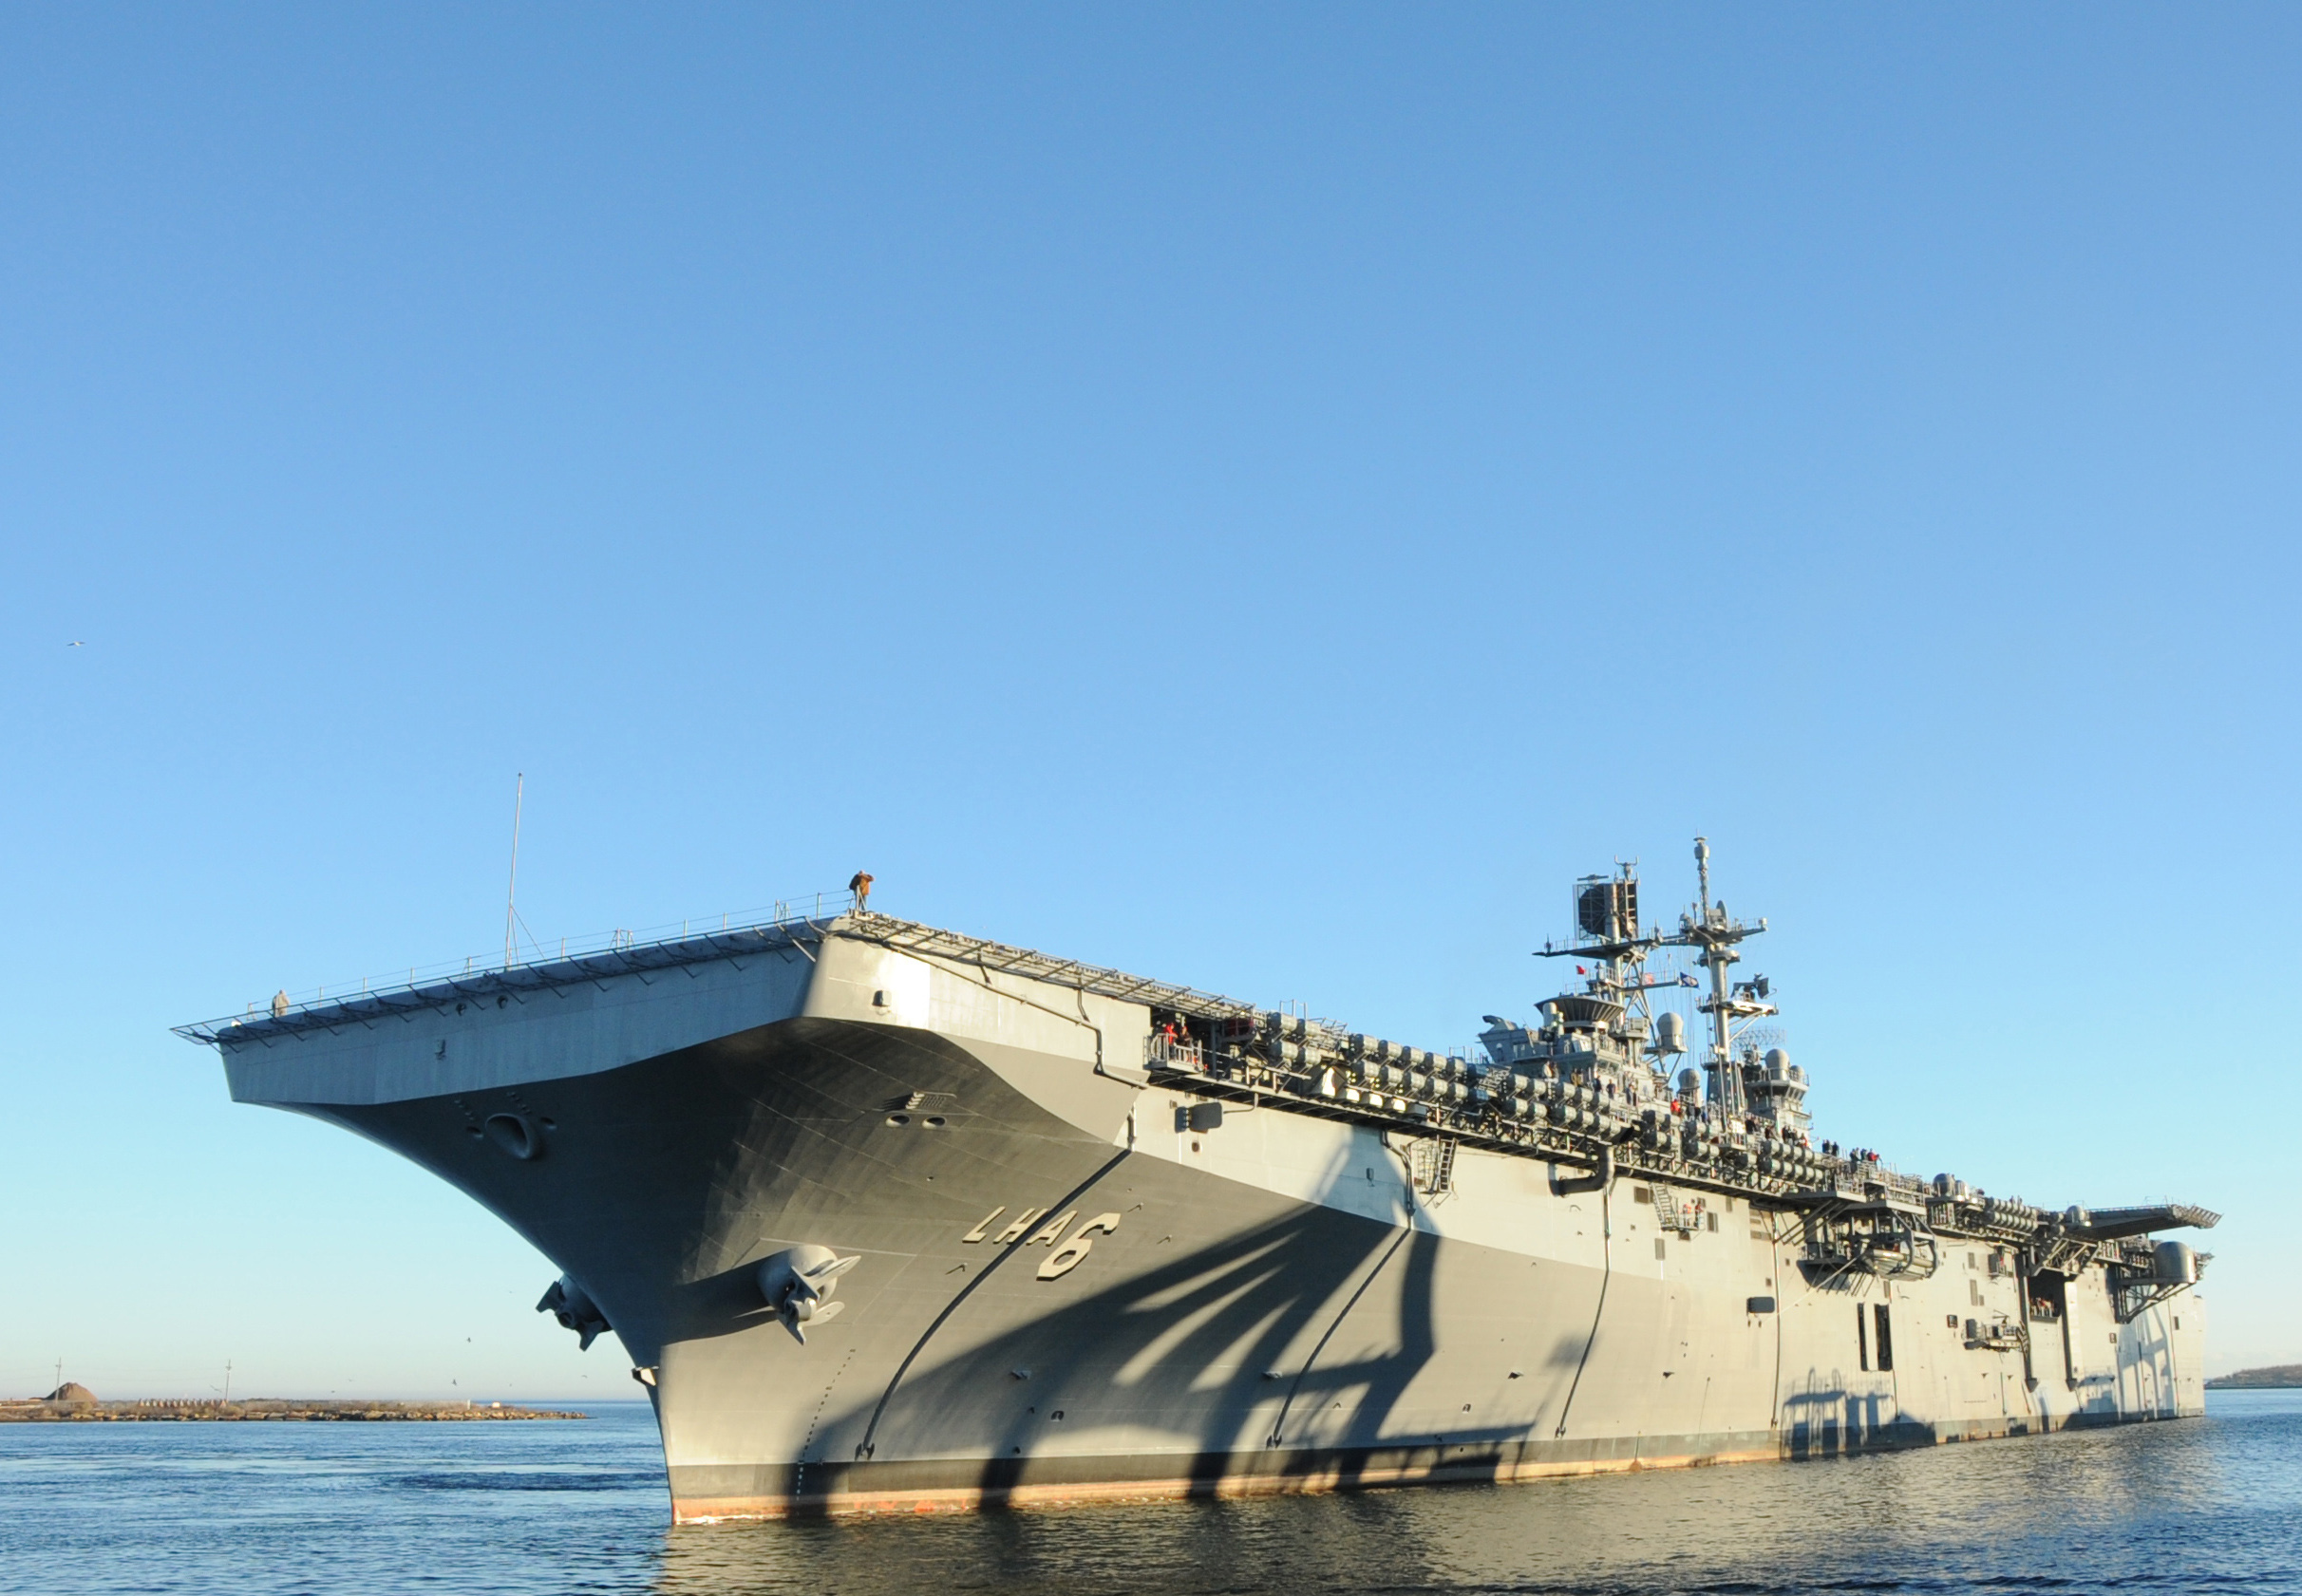 America (LHA 6) returns to Ingalls Shipyard from acceptance trials on Jan. 31, 2014. US Navy Photo